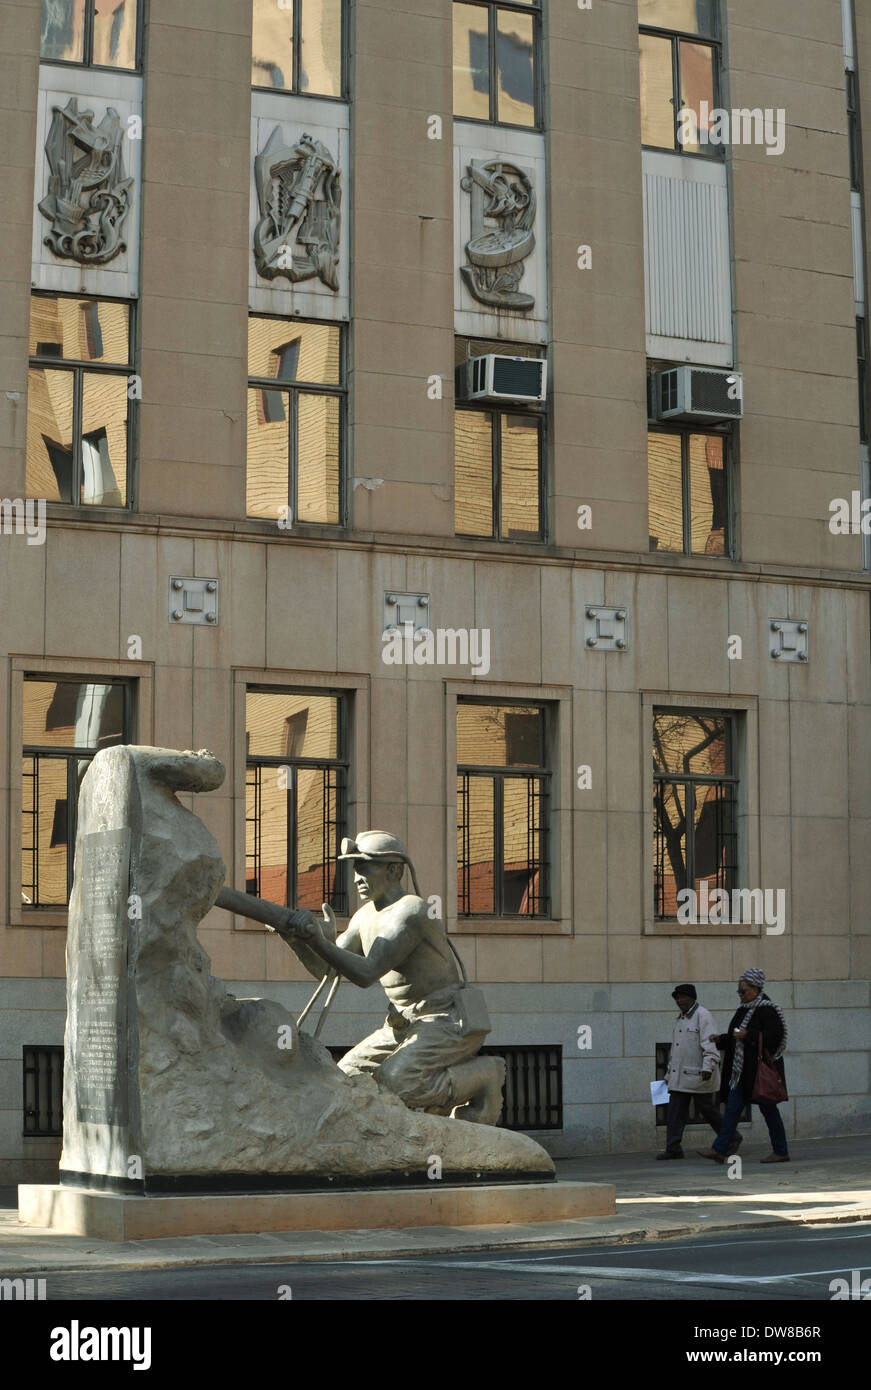 Johannesburg, Gauteng, South Africa, people walking past sculpture of mine worker drilling, statue honouring role of miners, downtown, city - Stock Image